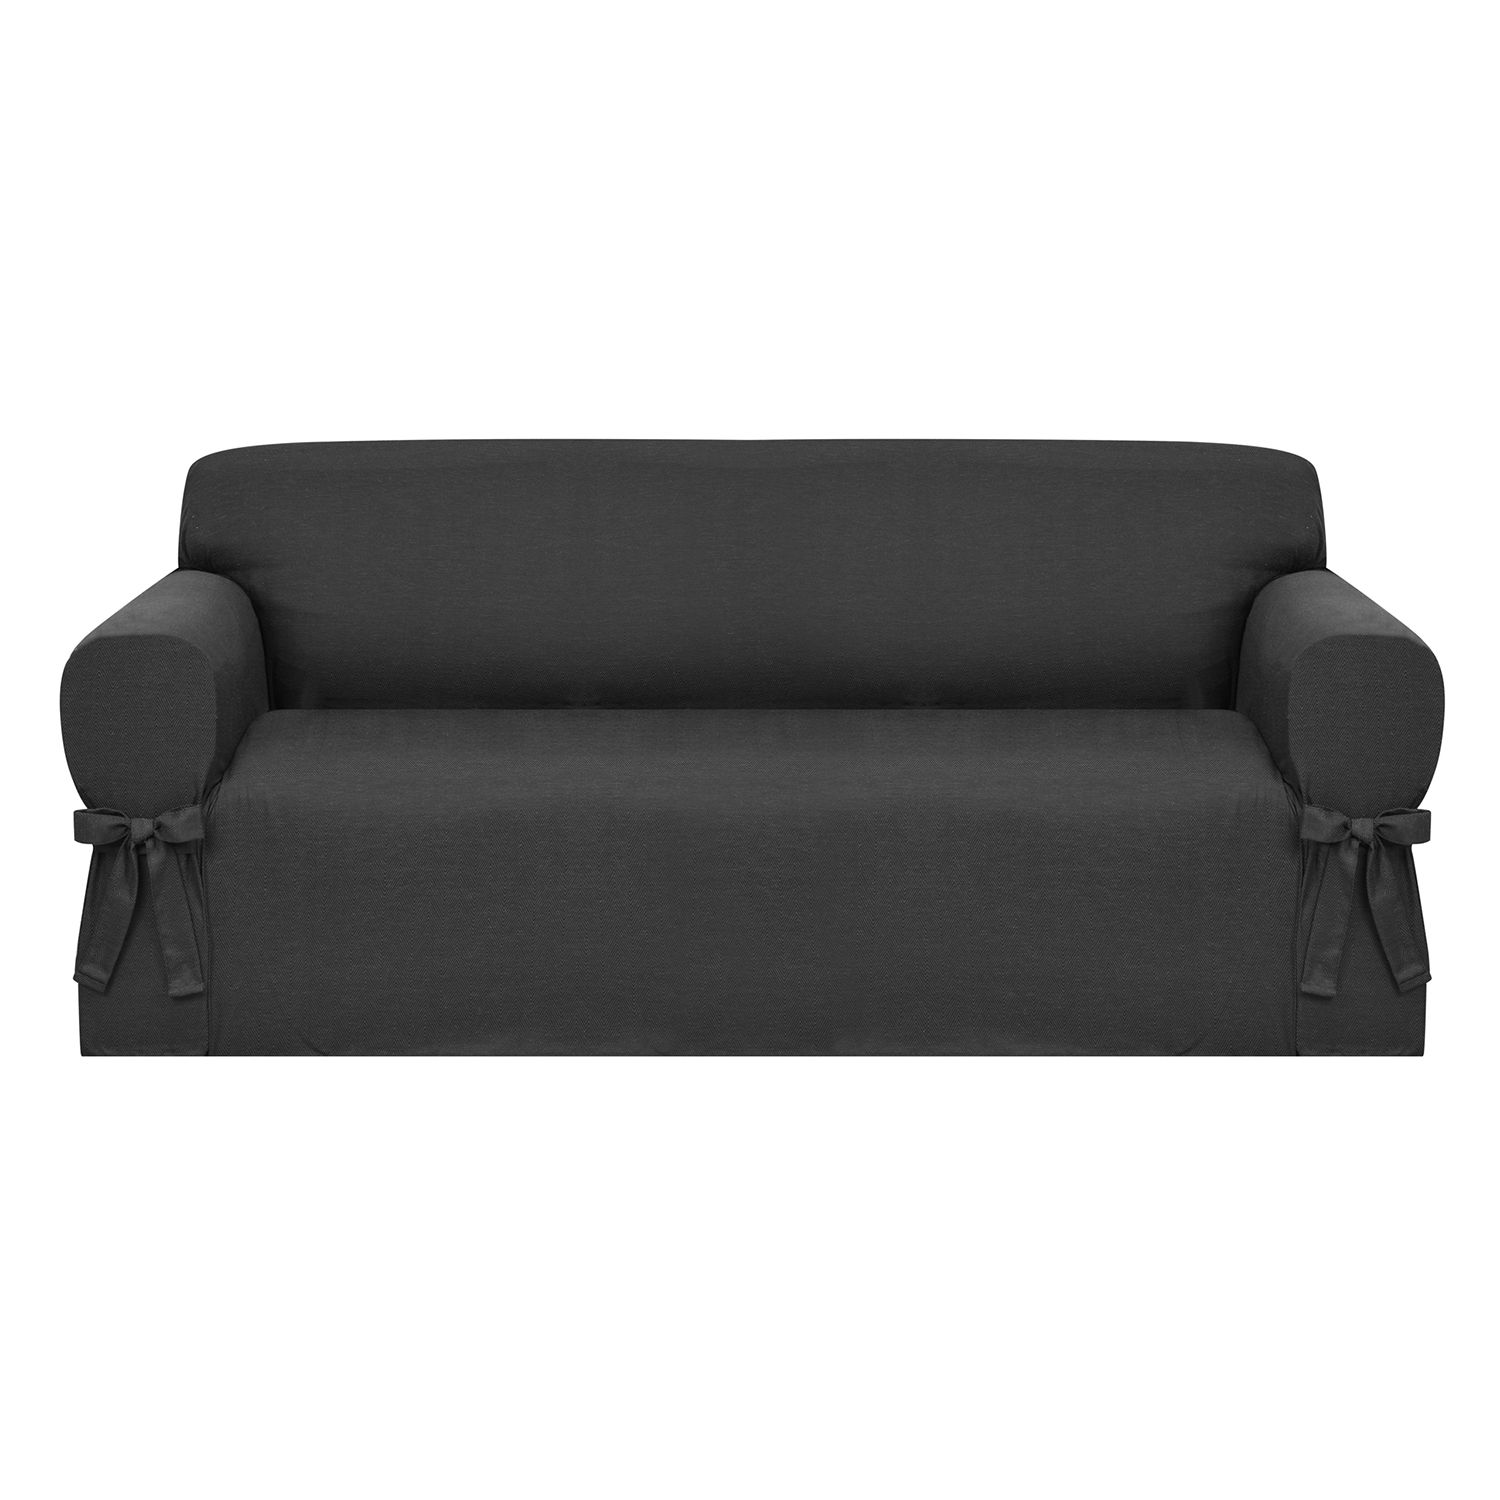 Charmant Kathy Ireland Garden Retreat Sofa Slipcover